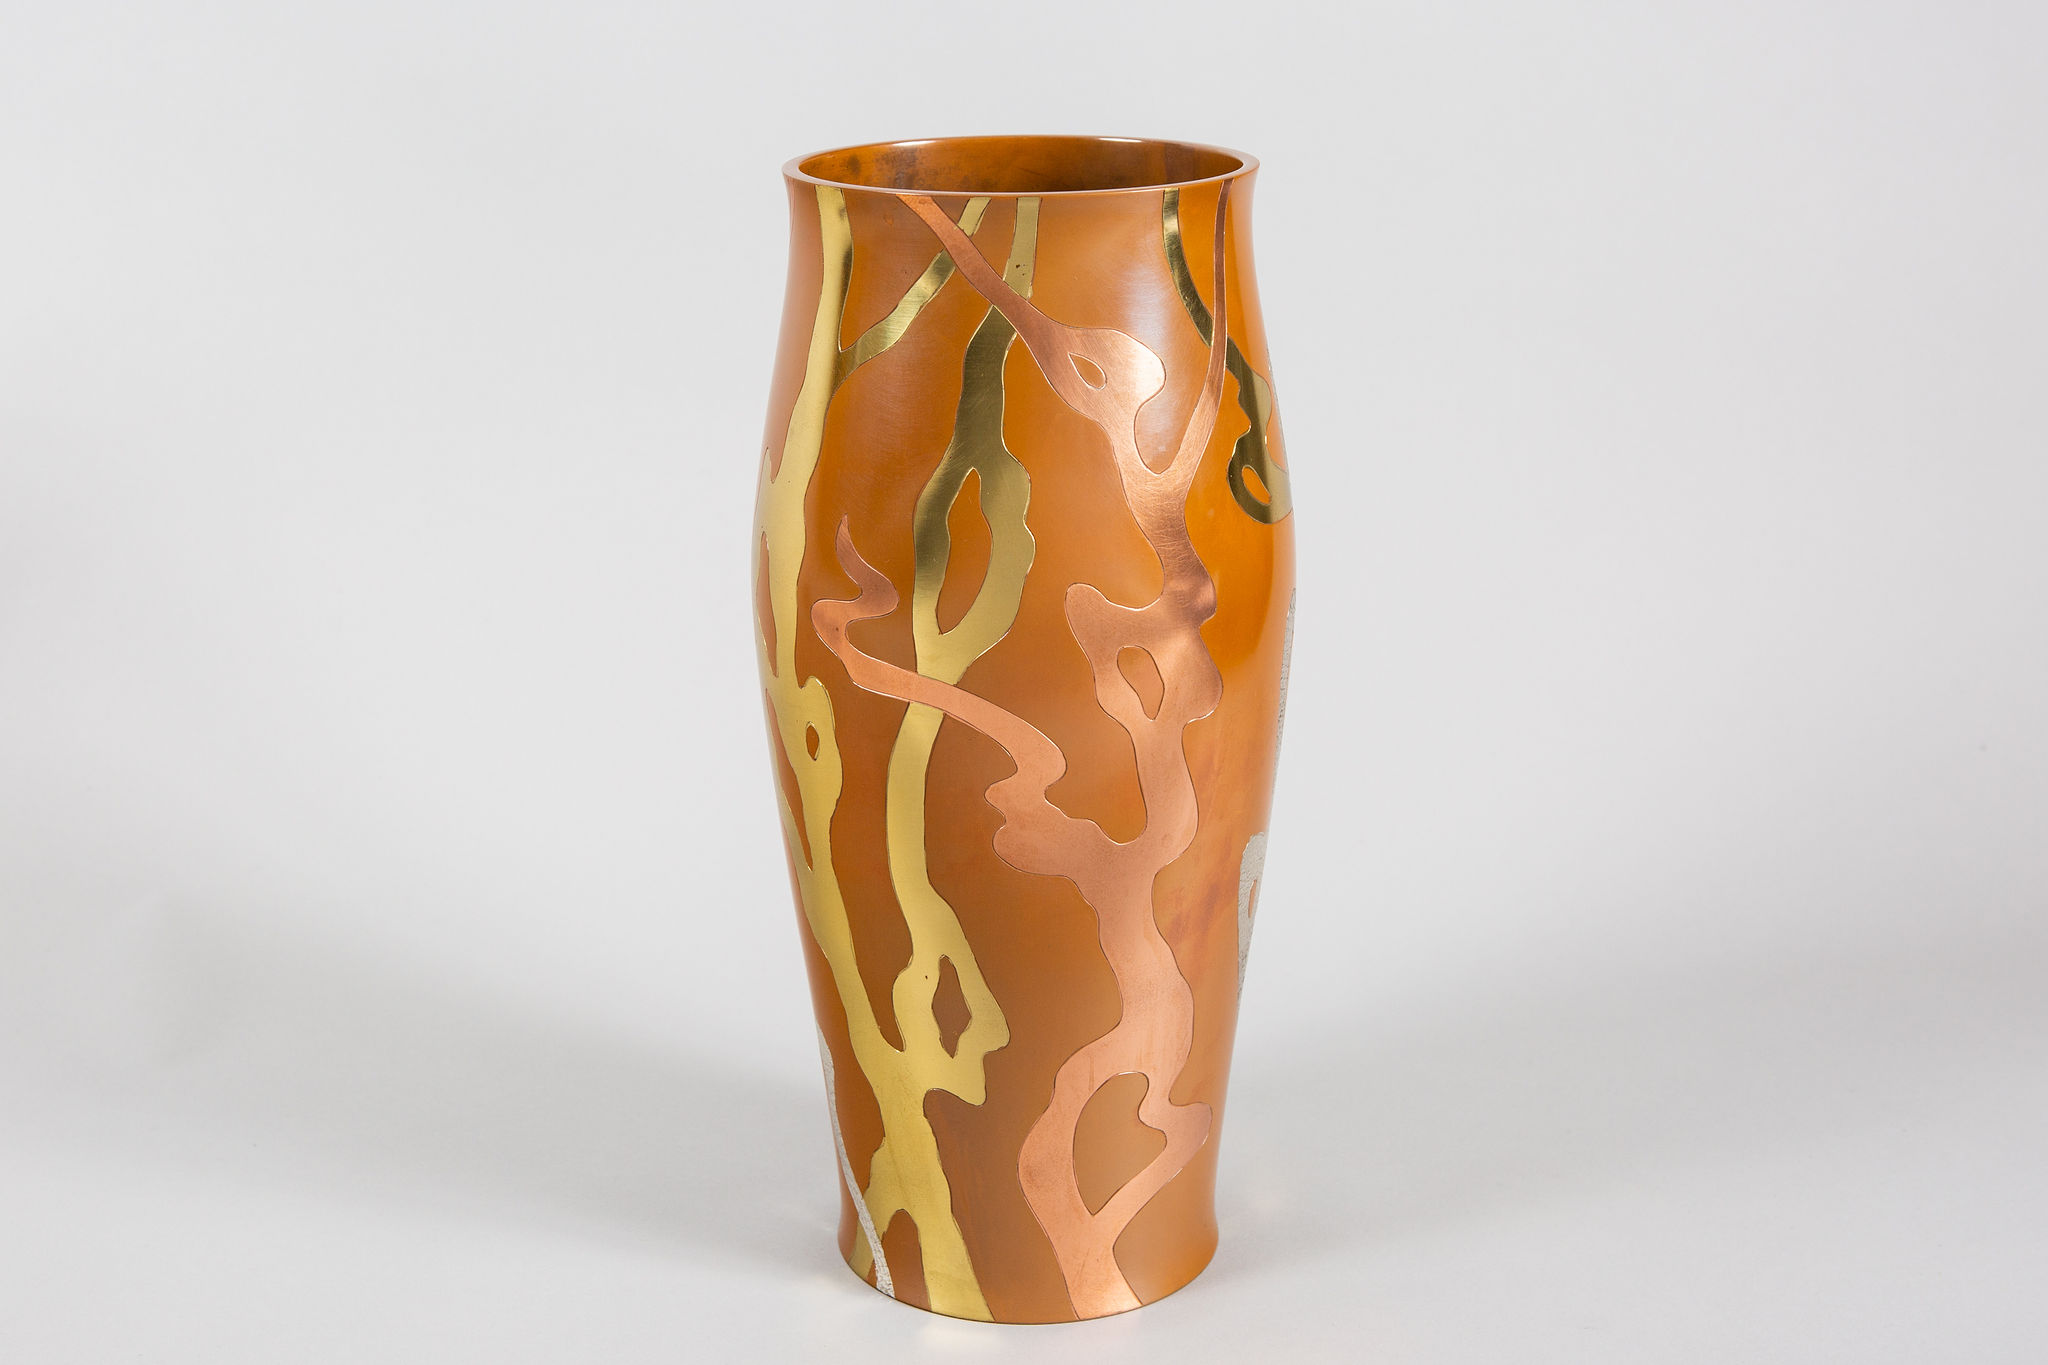 Abstract Japanese Bronze Vase with Mixed Metal